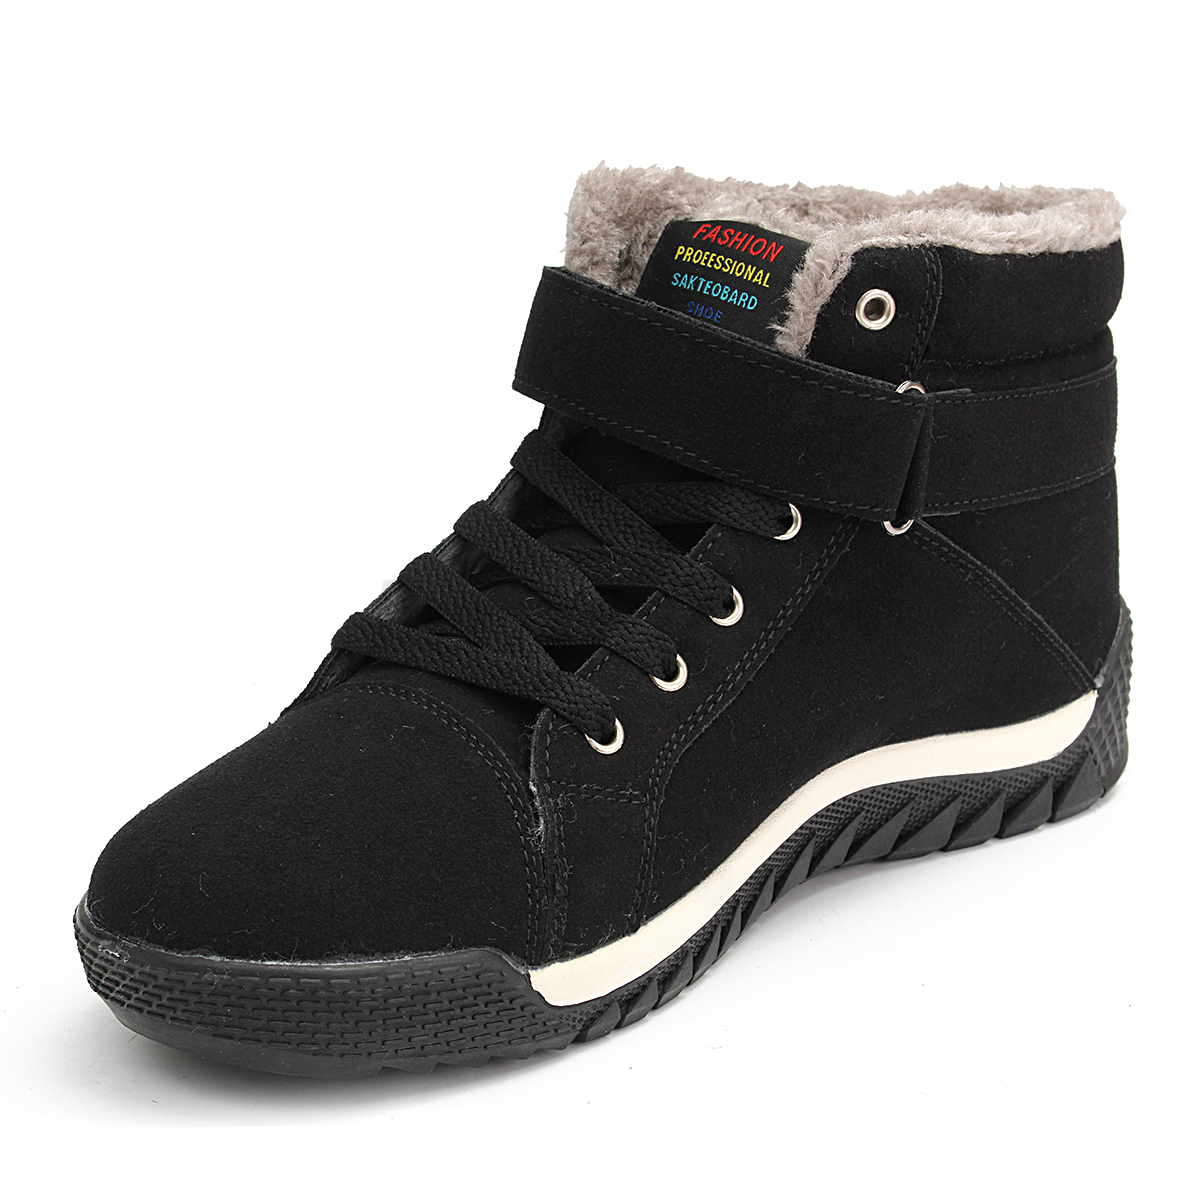 Winter-Men-039-s-Suede-Casual-Lace-Up-Fur-Lined-Warm-High-Top-Shoes-Snow-Ankle-Boots